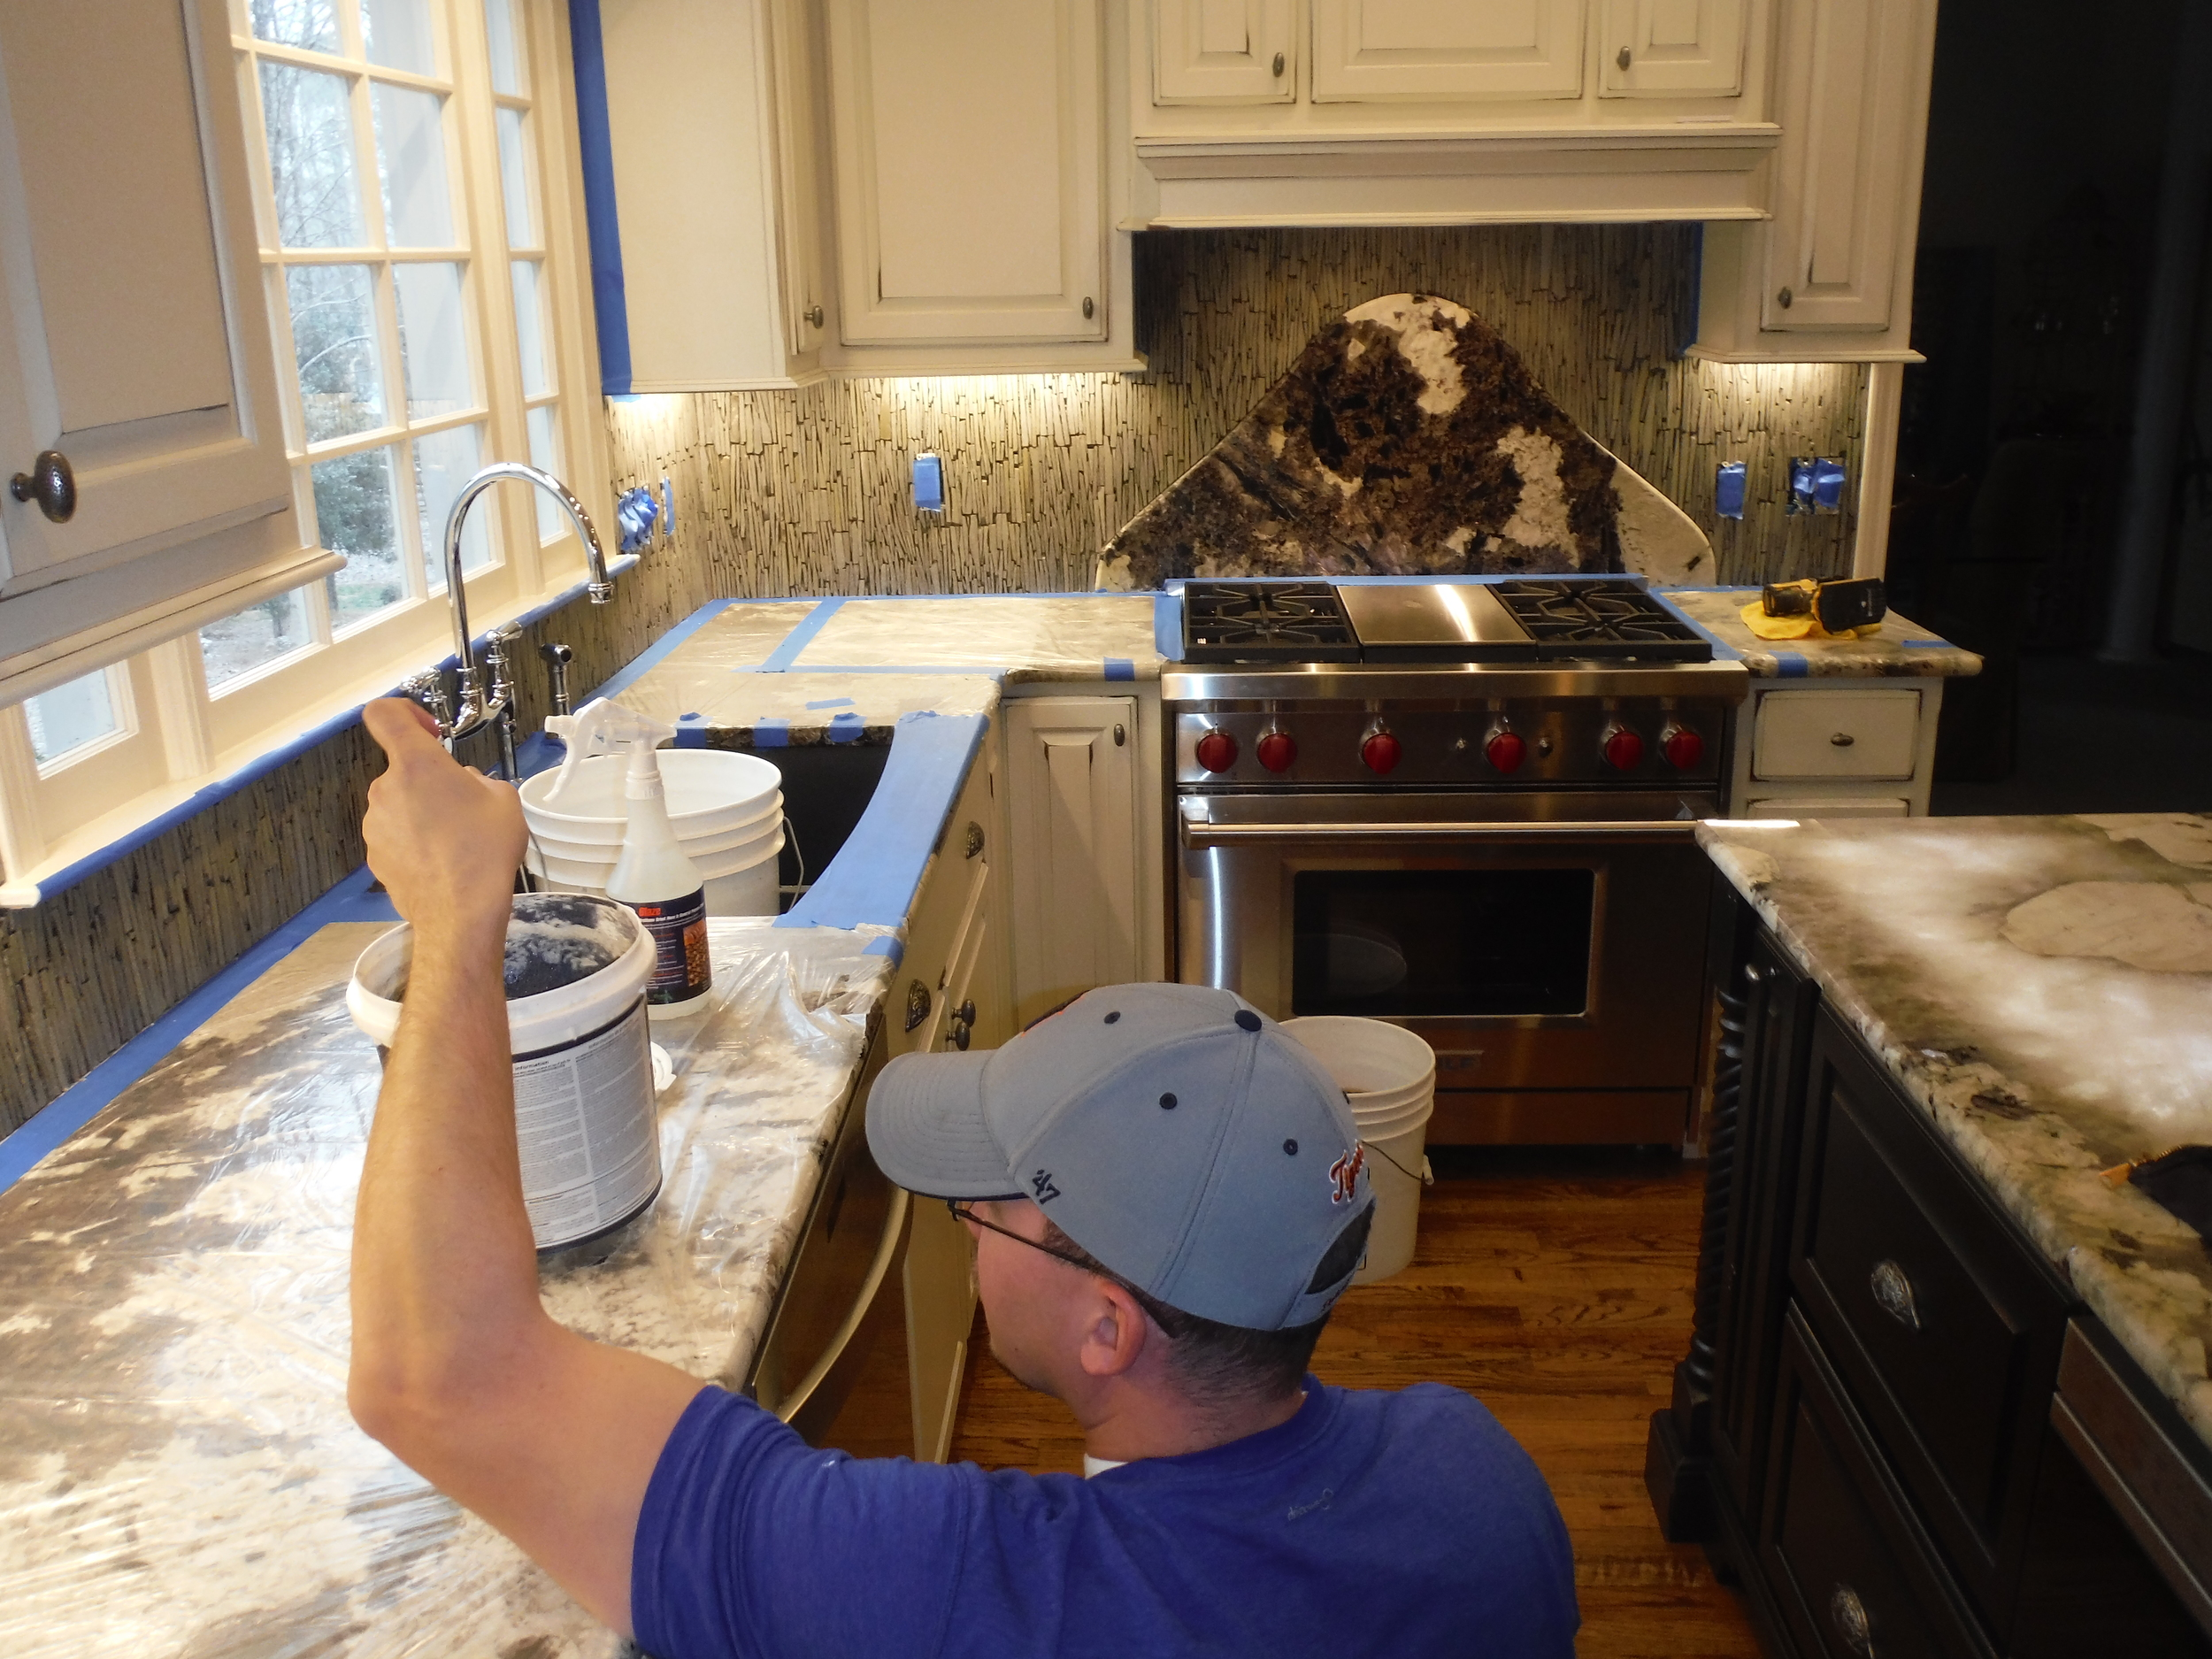 """Will the competition protect your property during an installation and leave your home better than when they arrived? A true finish guy lives by the creed """"Would I pay for this?"""""""